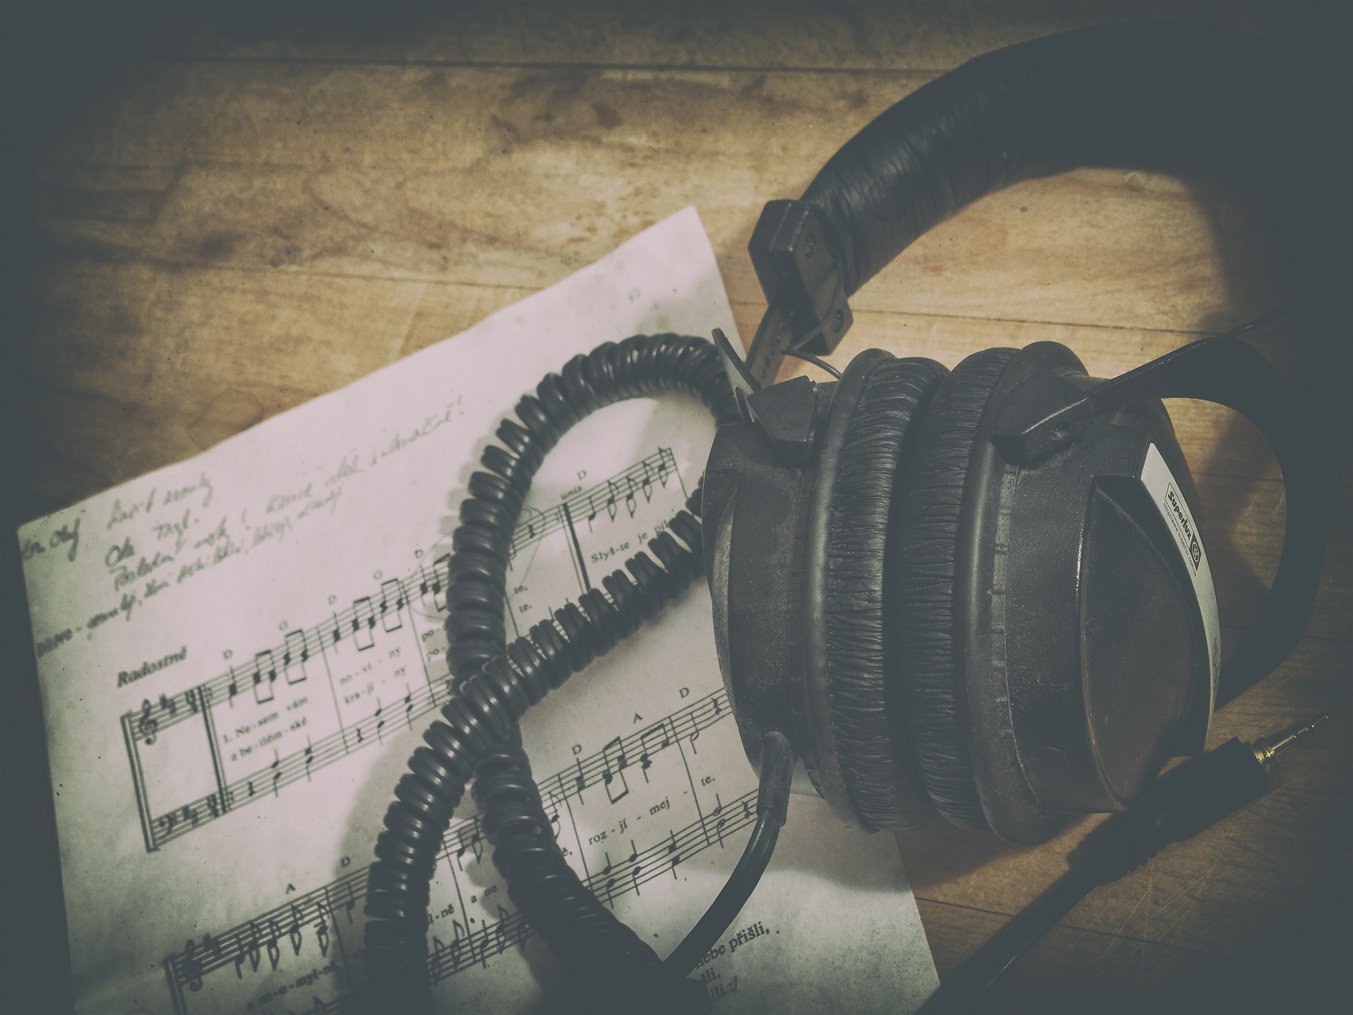 Headphones and music notes.jpg